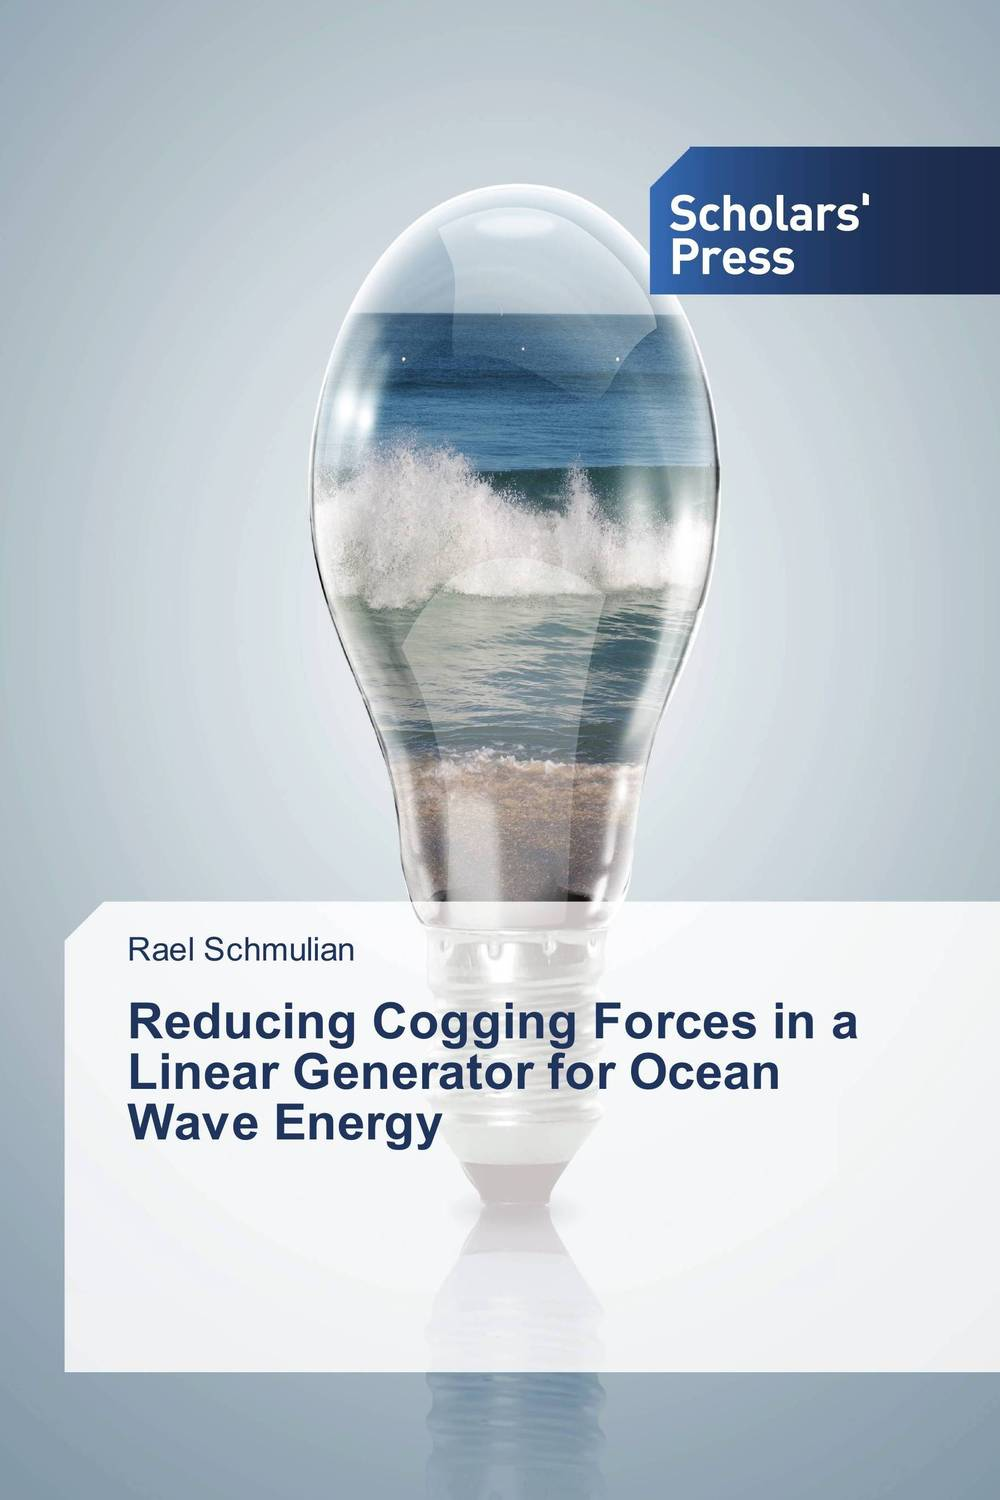 Reducing Cogging Forces in a Linear Generator for Ocean Wave Energy